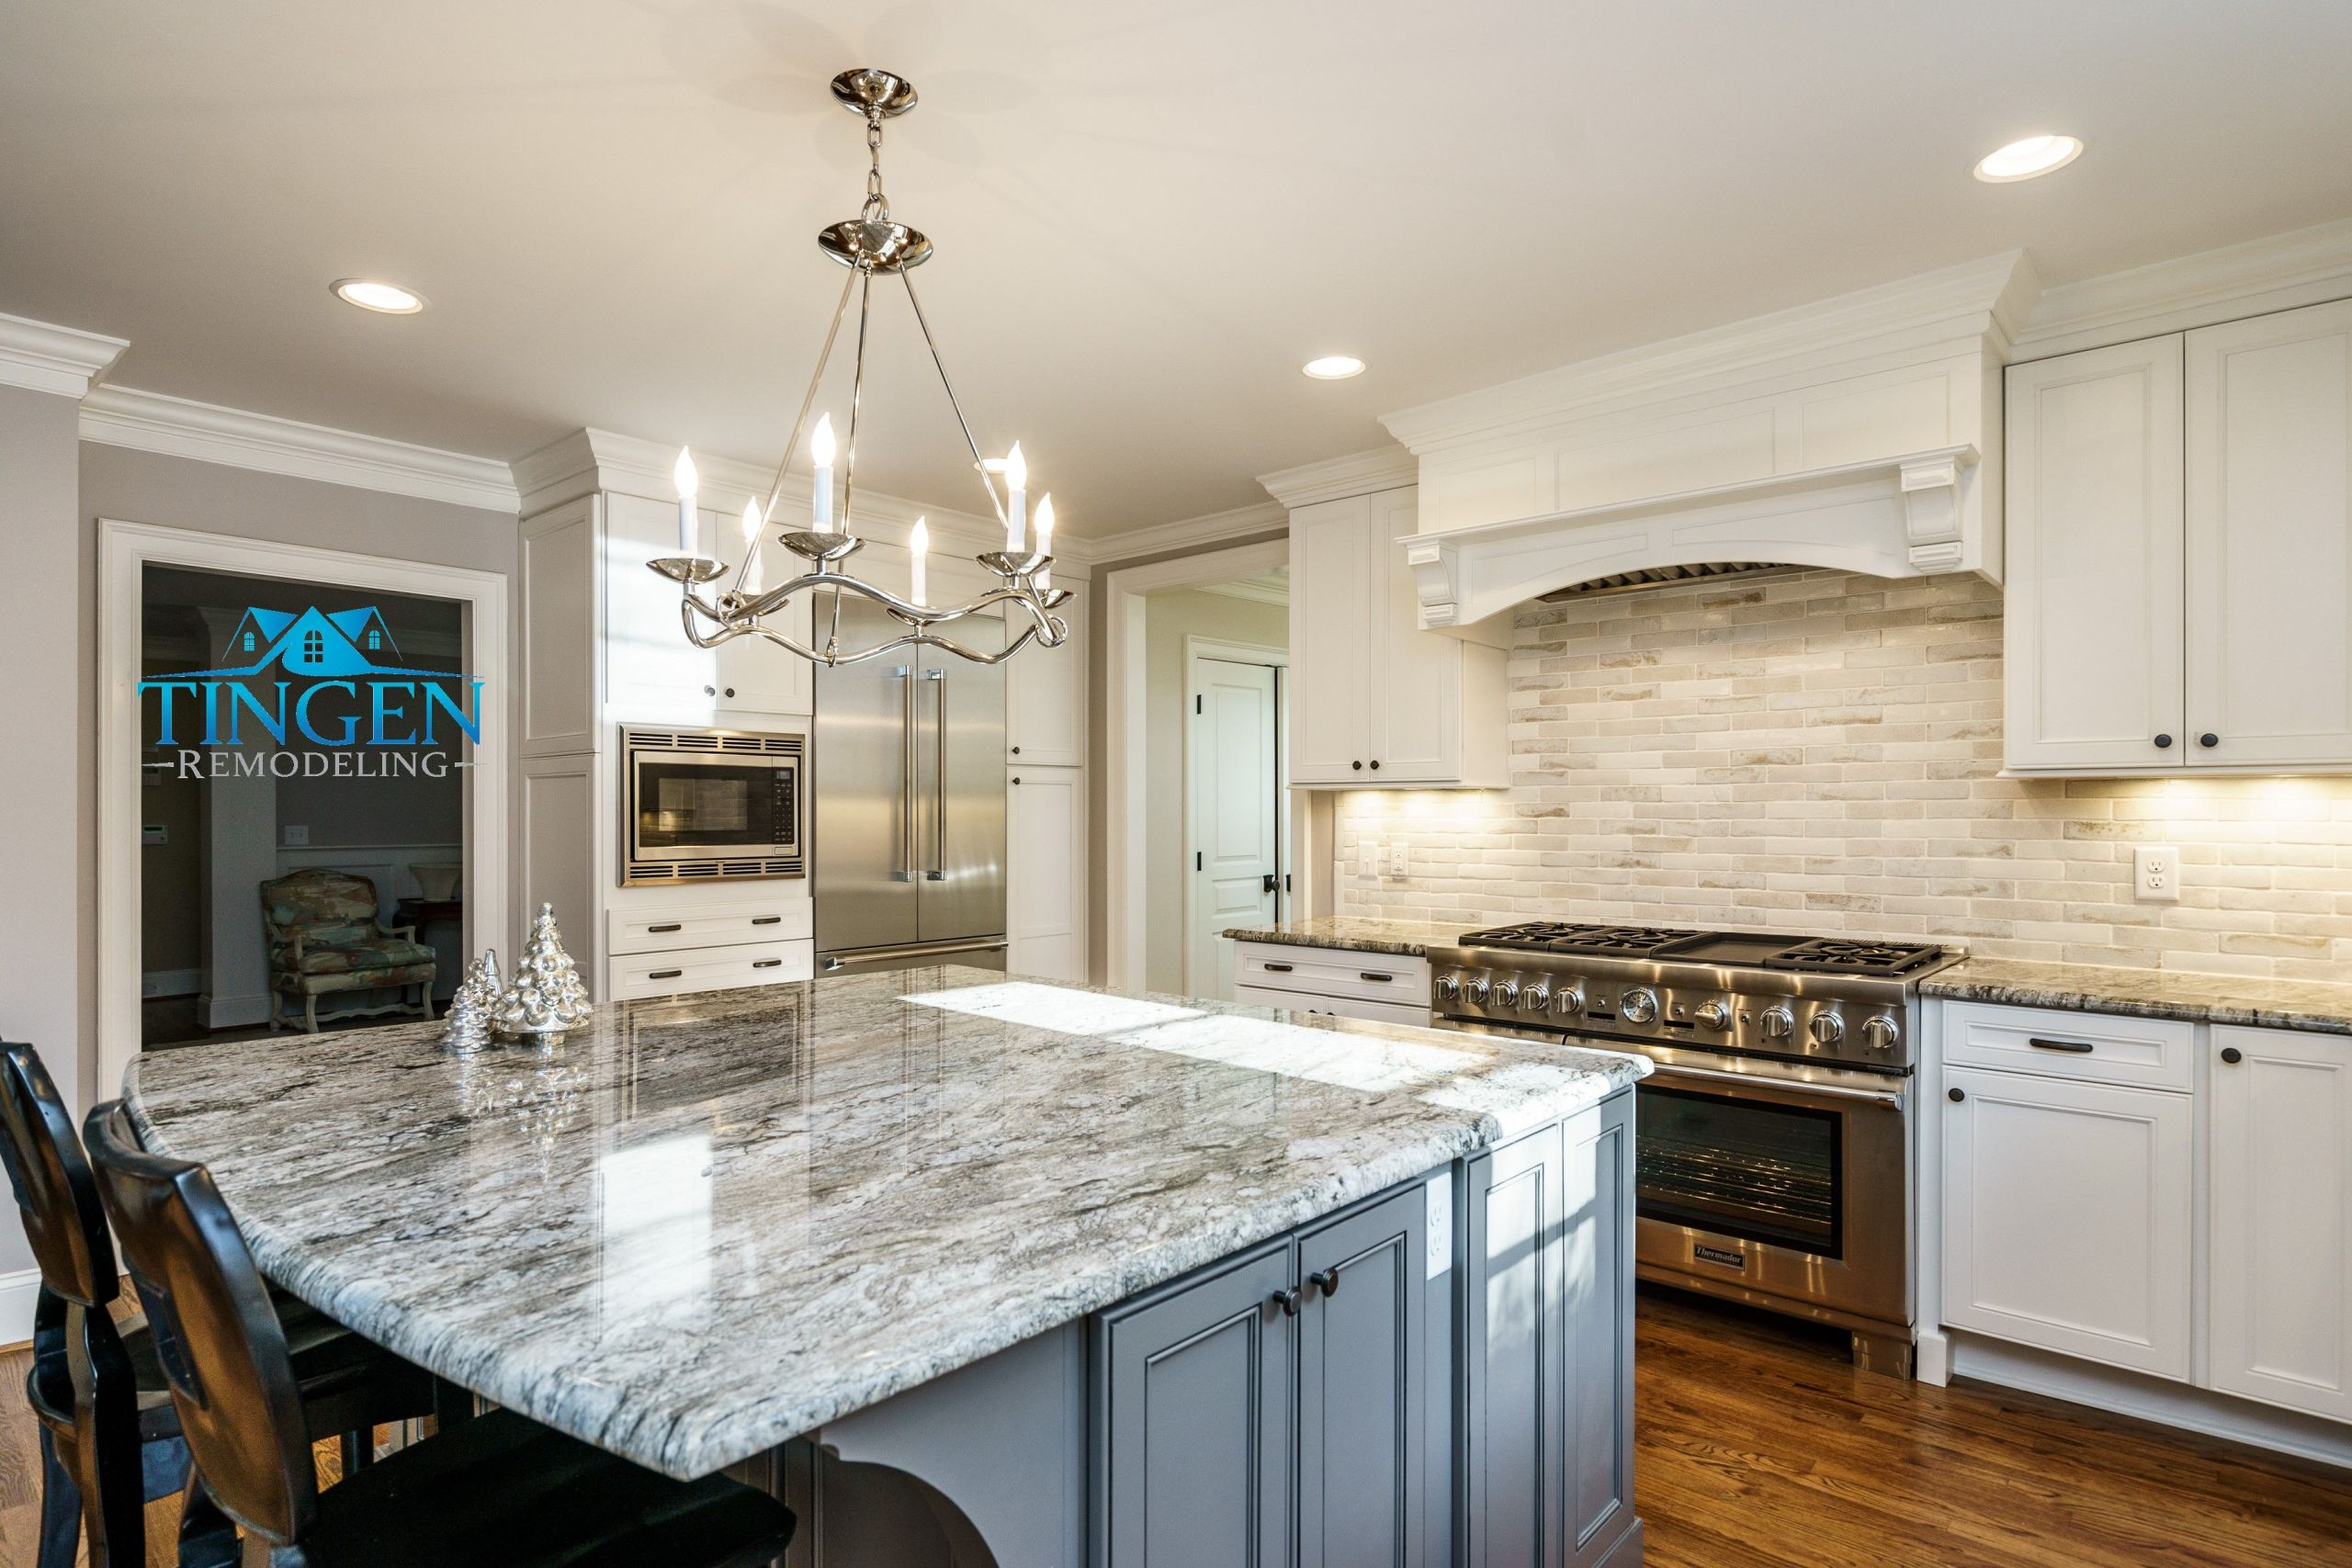 Kitchen Remodeling Raleigh Nc  Kitchen Remodeling Raleigh Nc – Home Maximize Ideas